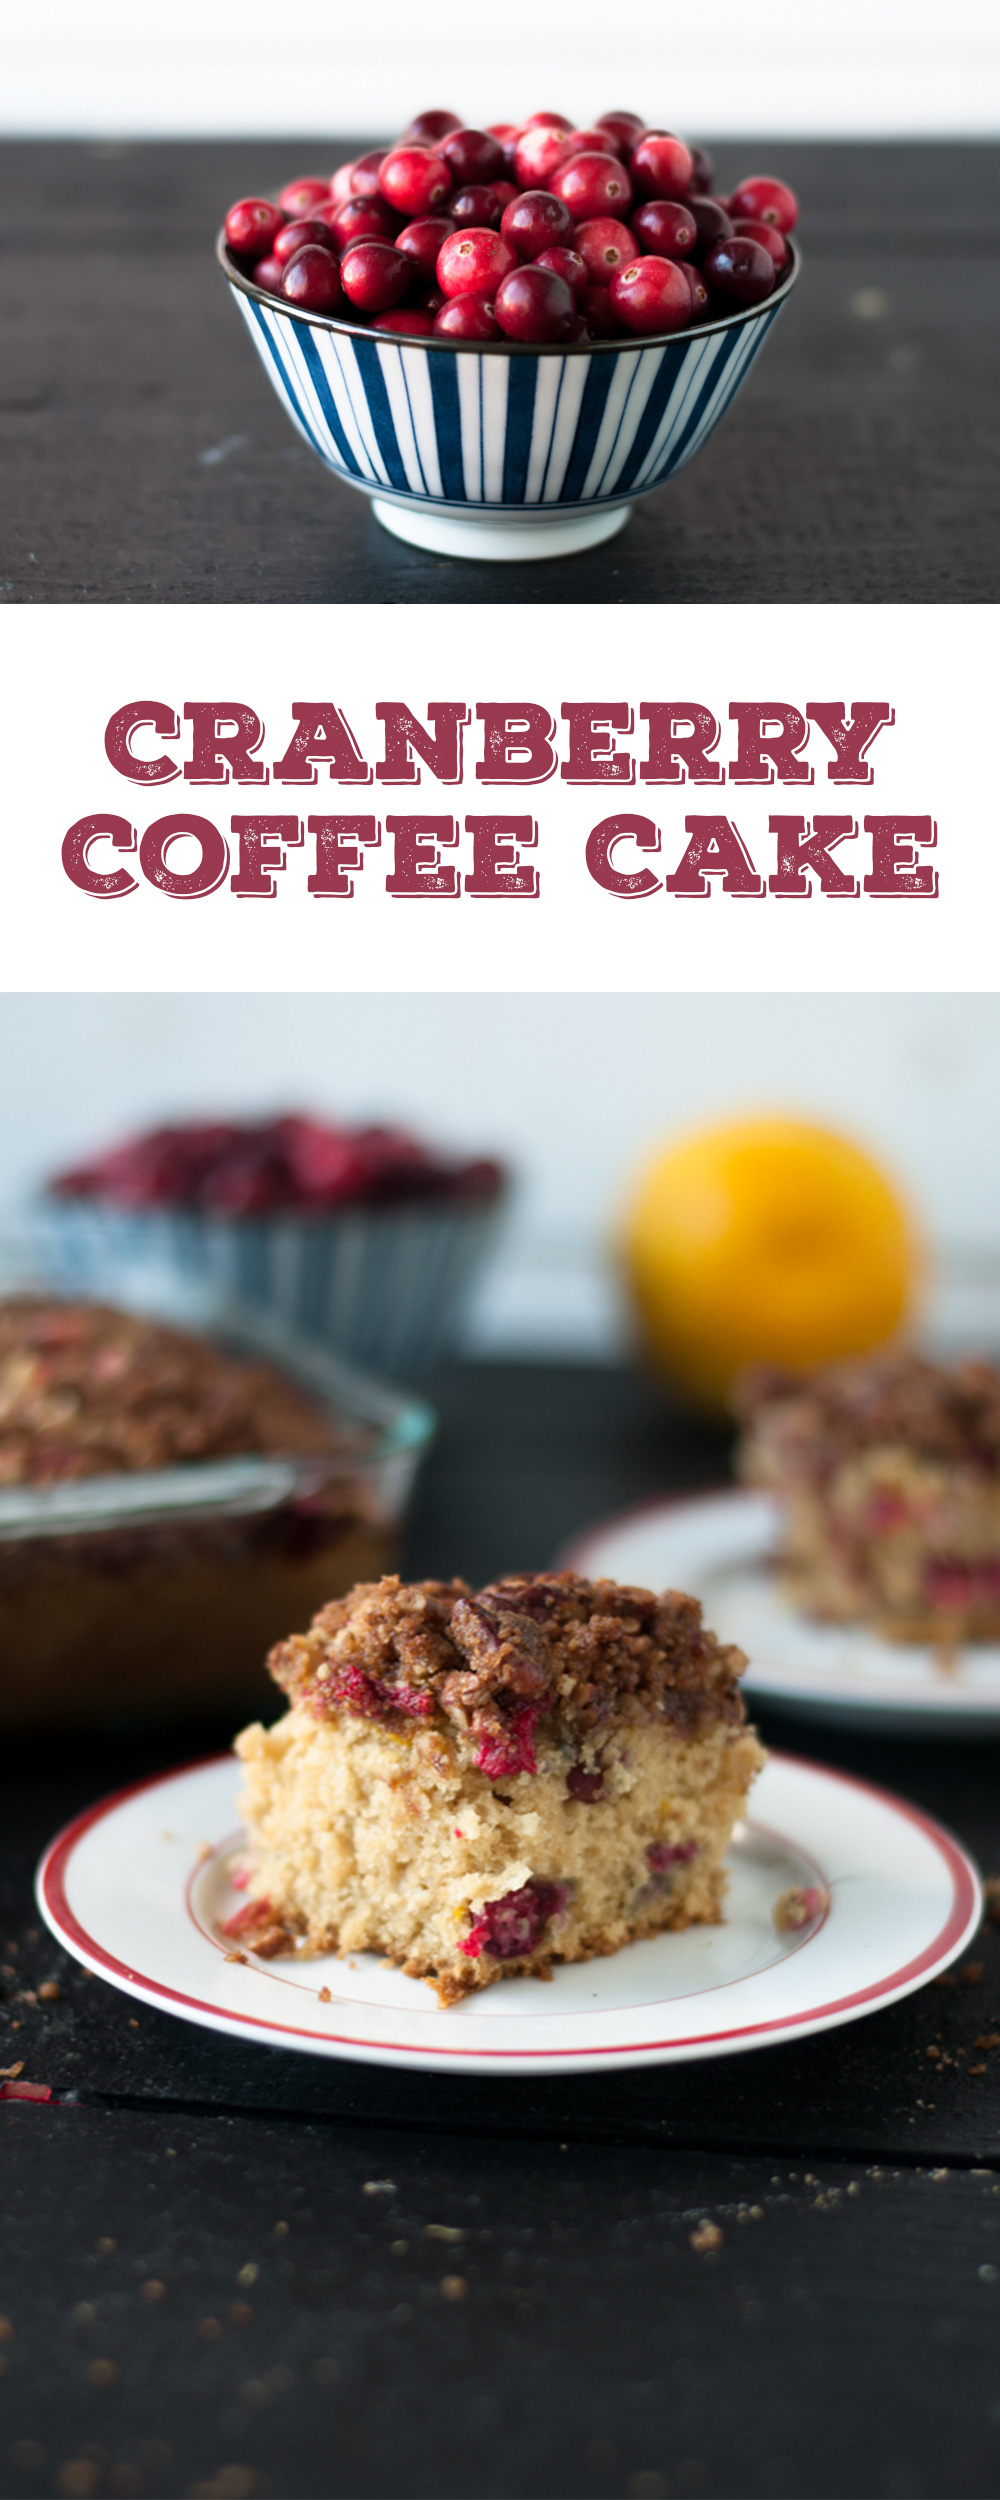 Fresh cranberries and orange zest add a seasonal twist to vegan coffee cake. Perfect for fall or Thanksgiving. #fall #thanksgiving